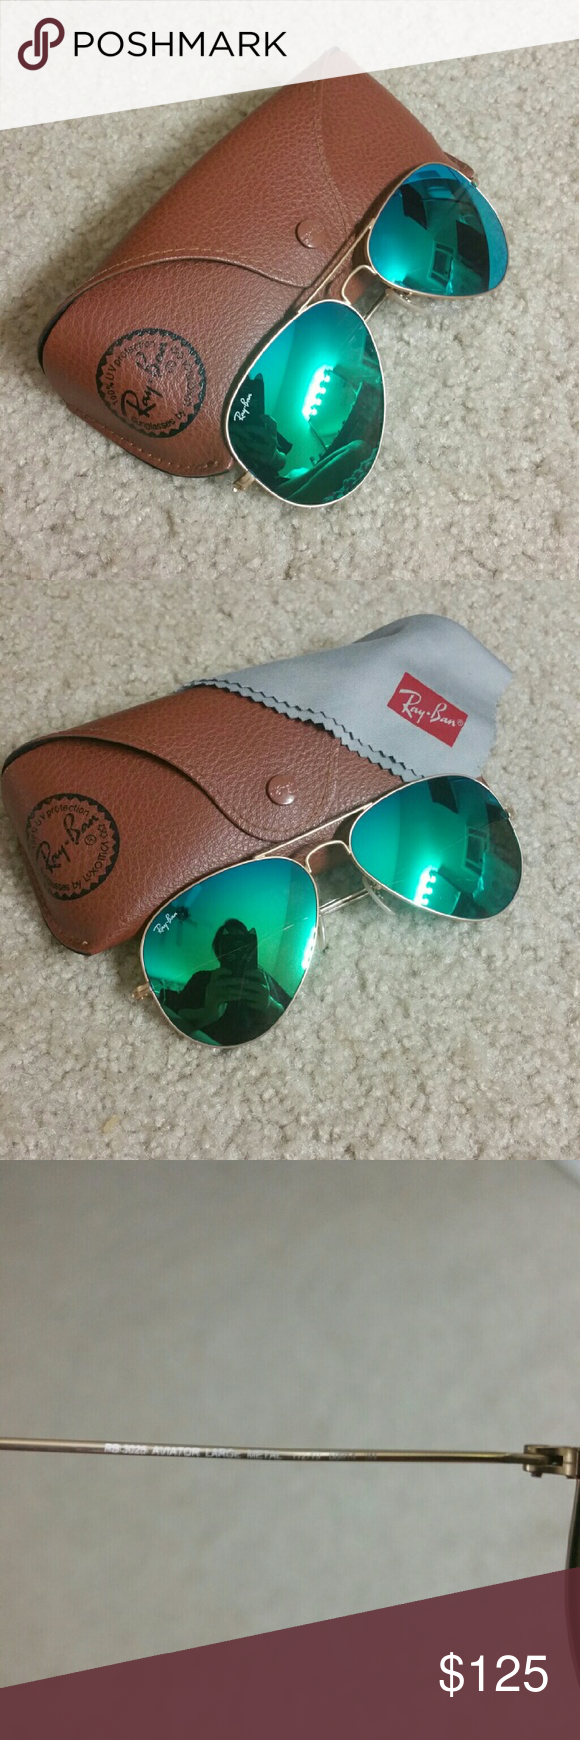 Ray-Ban Green Flash Aviator Model number RB3025 112/19 58-14. Like brand new, only worn a handful of times. Includes all items shown in picture Ray-Ban Accessories Sunglasses